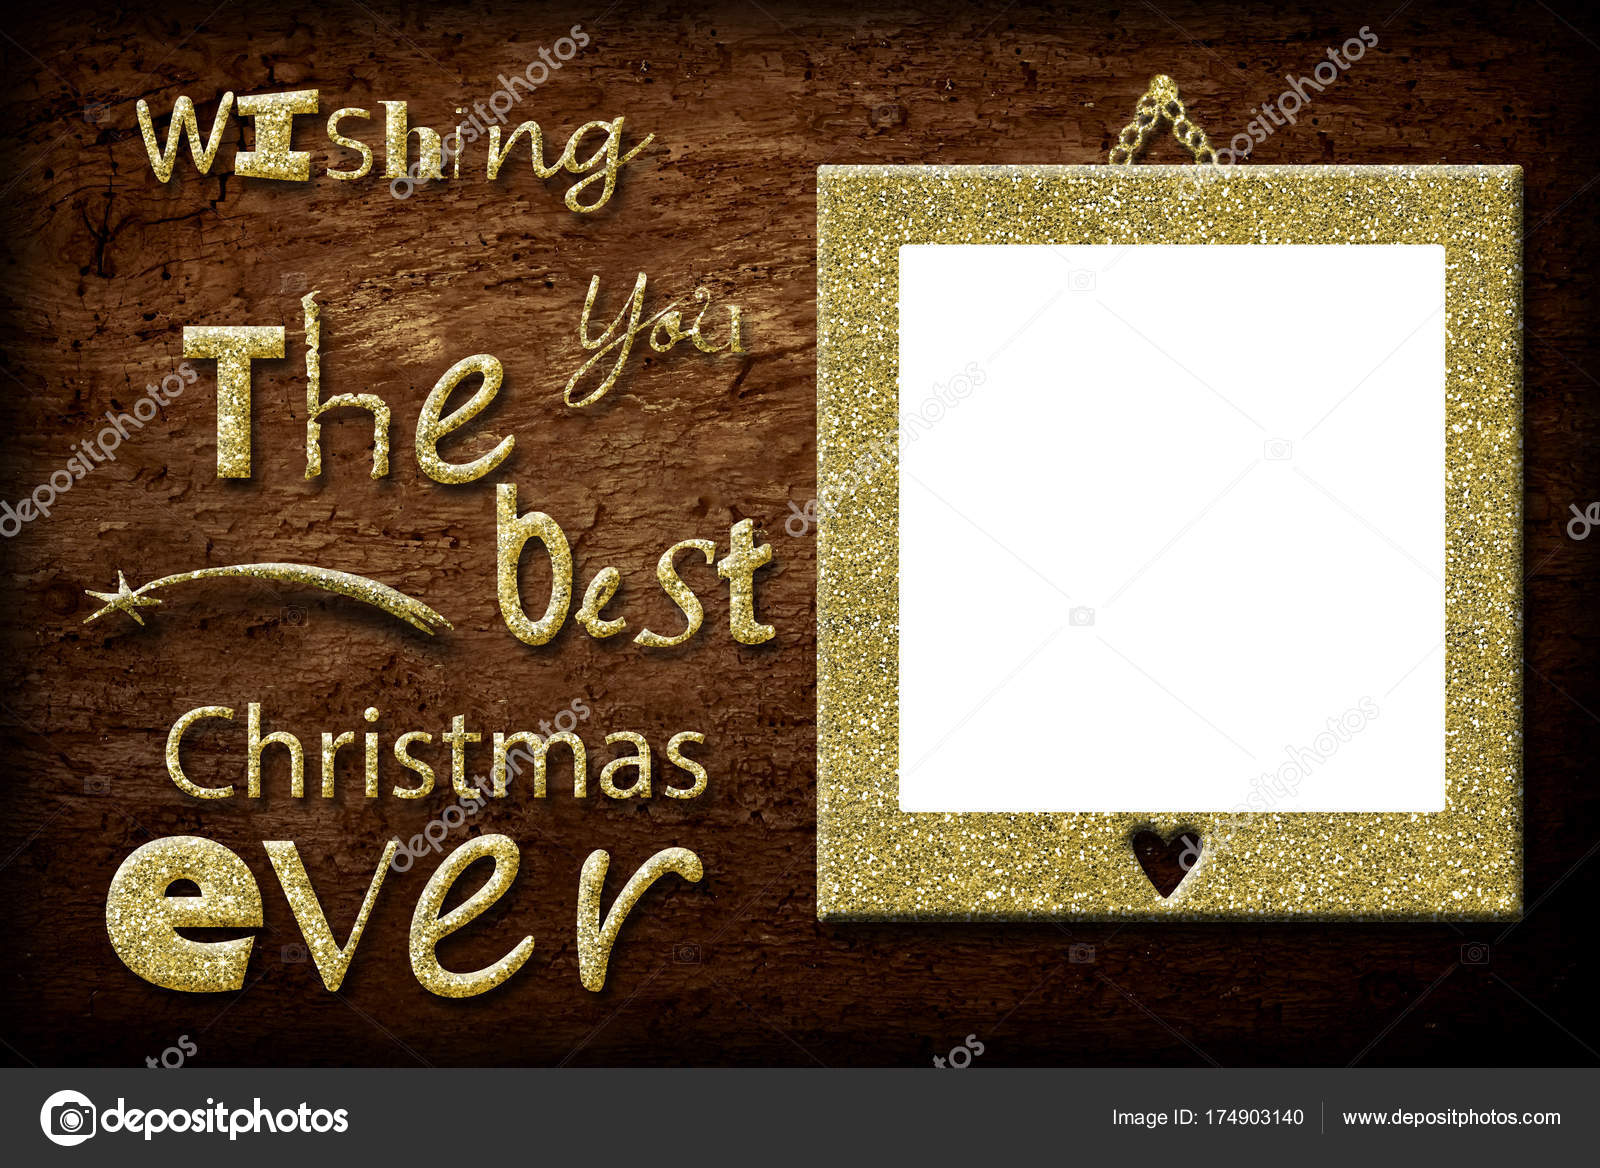 Good wishes christmas greeting frame stock photo risia 174903140 good wishes christmas greeting frame stock photo m4hsunfo